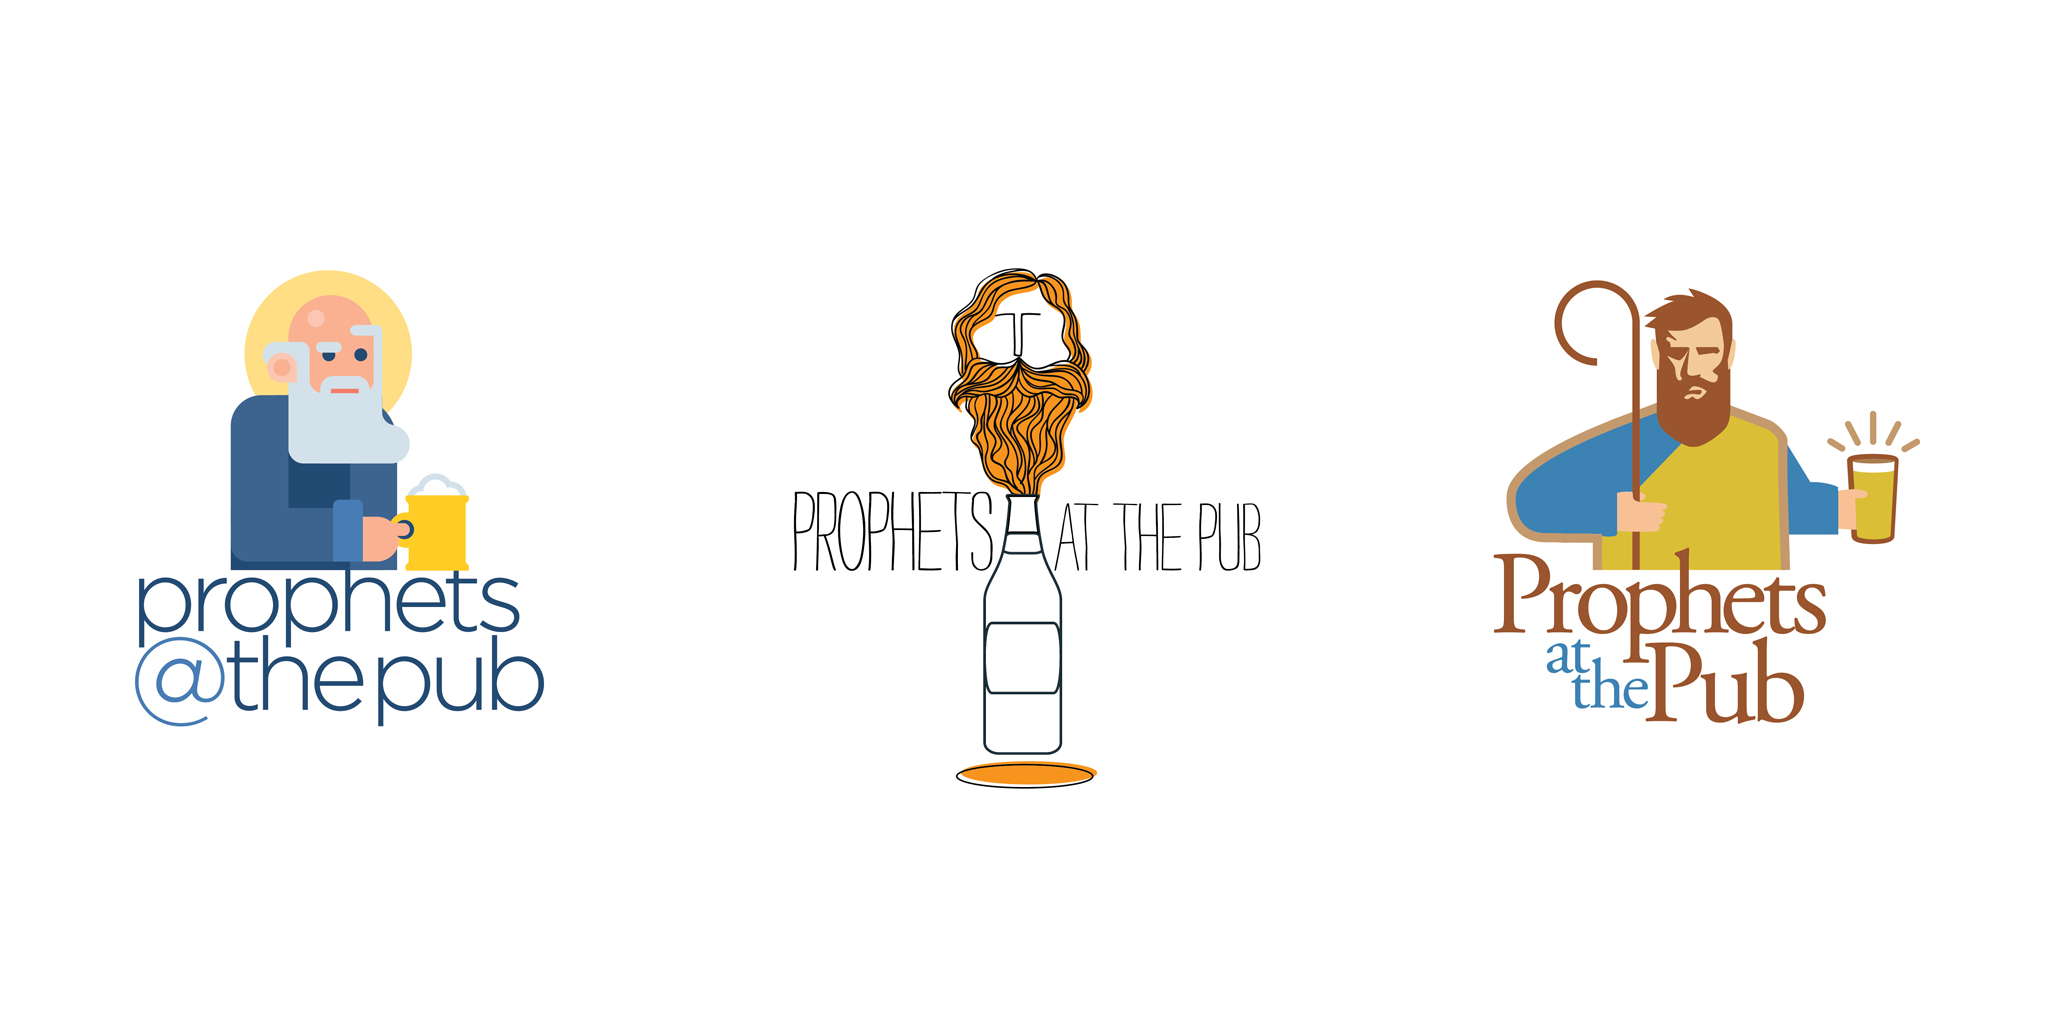 initial concepts: Prophets at the Pub